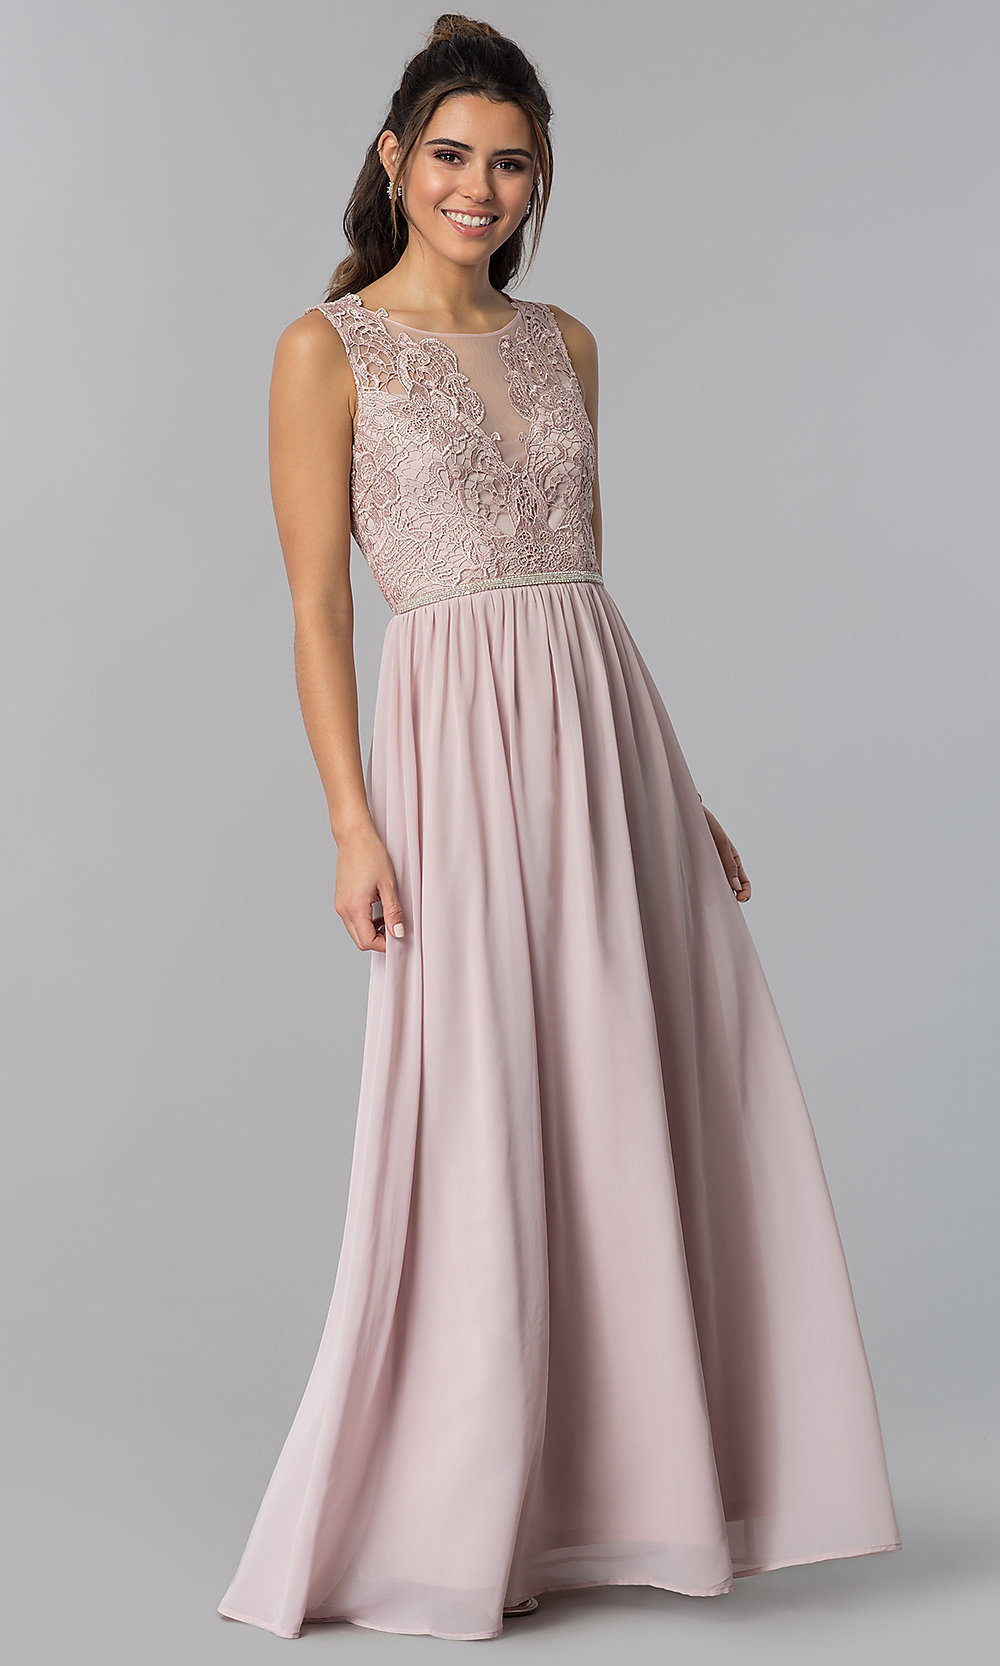 Tap to expand · Image of embroidered-lace-bodice long chiffon prom dress. 1c29037ae